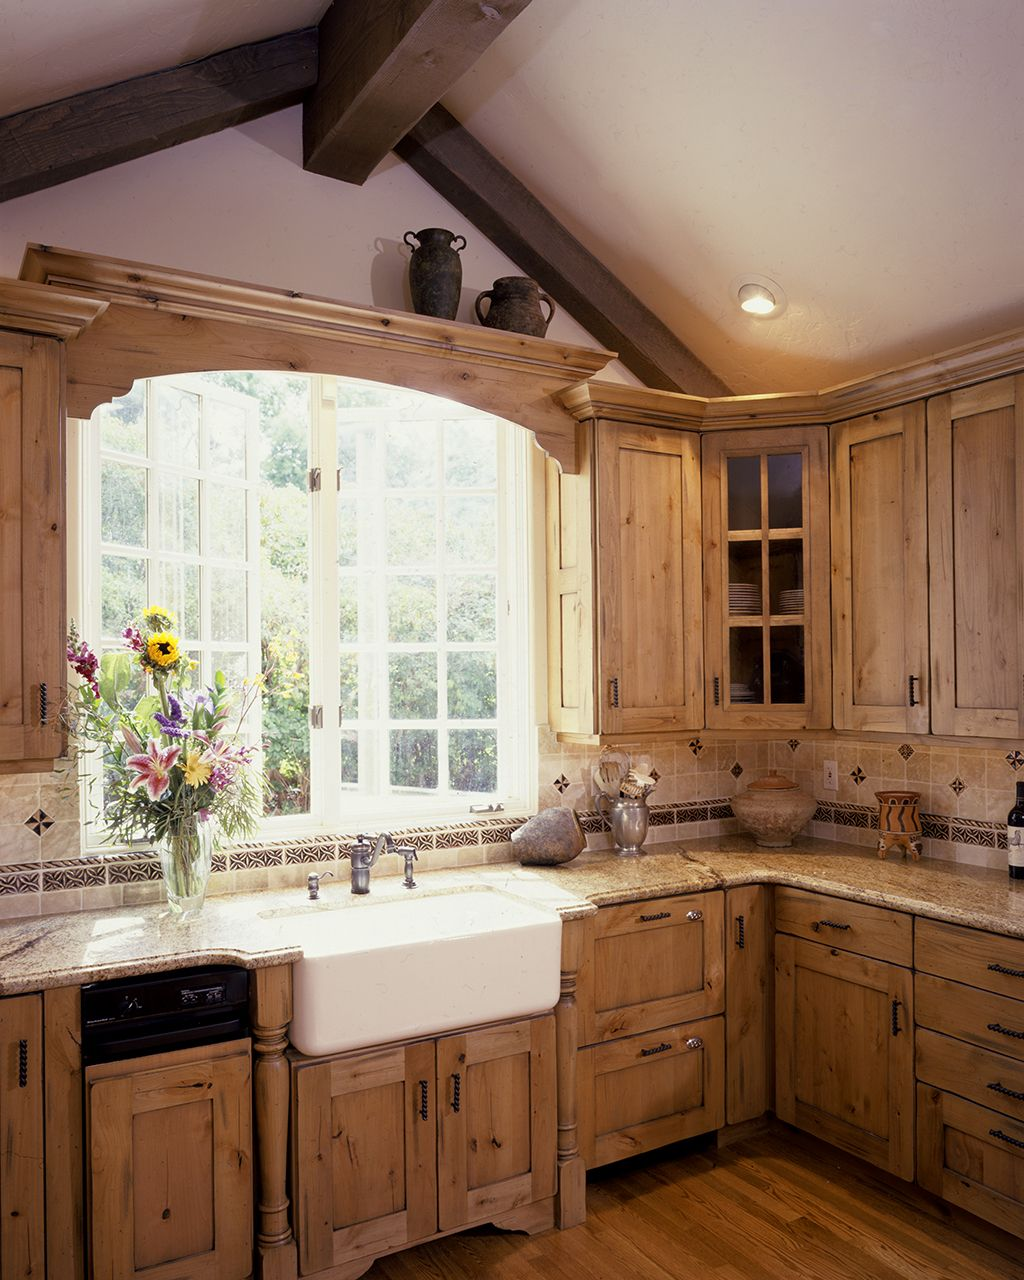 Knotty Pine Cabinets: Bright Country Kitchen In The Suburbs